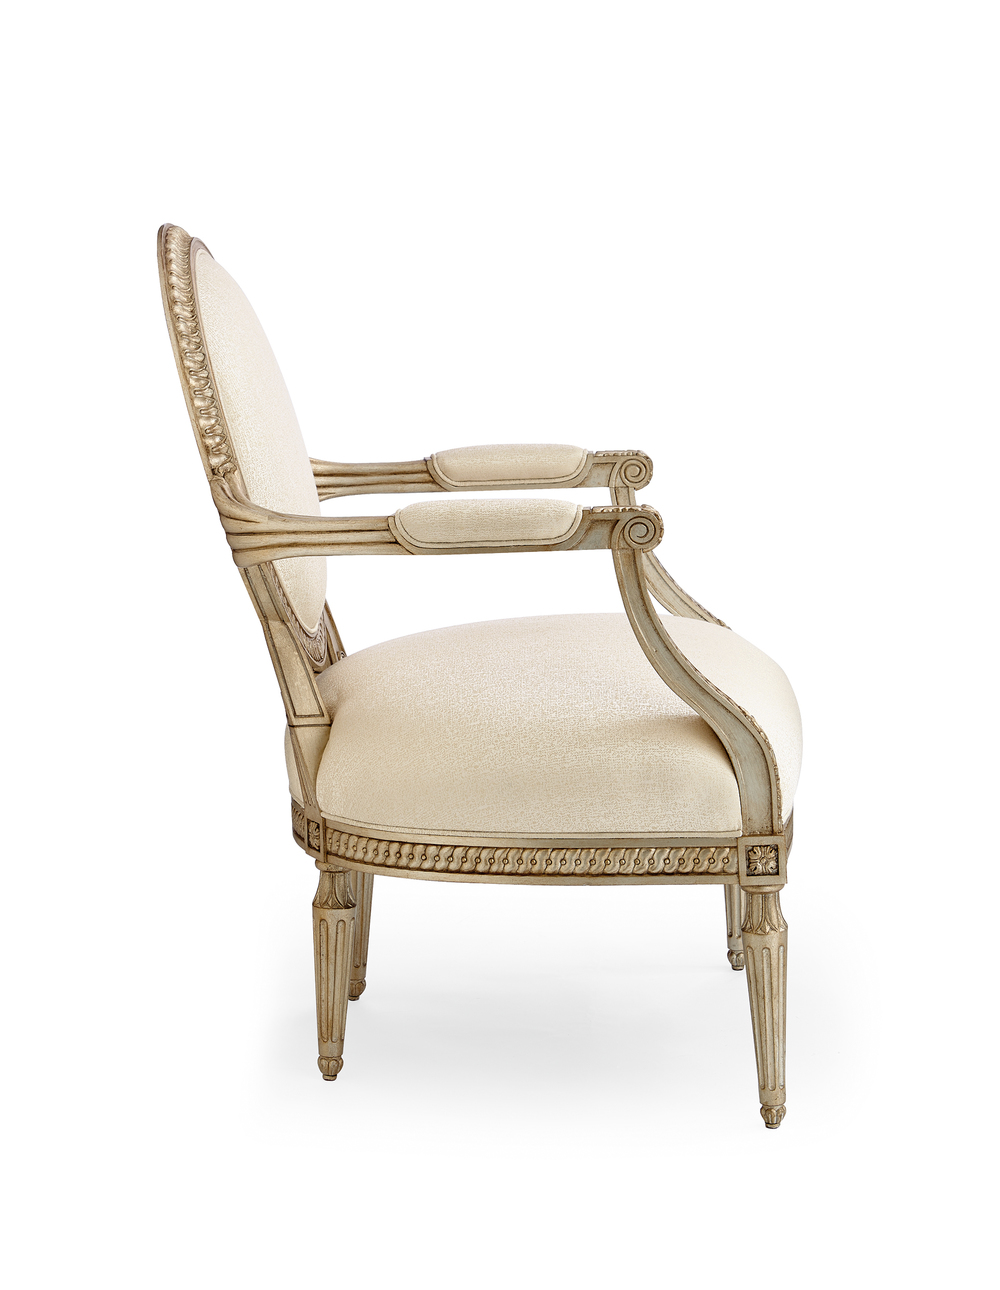 Caracole - The Gilded Chair